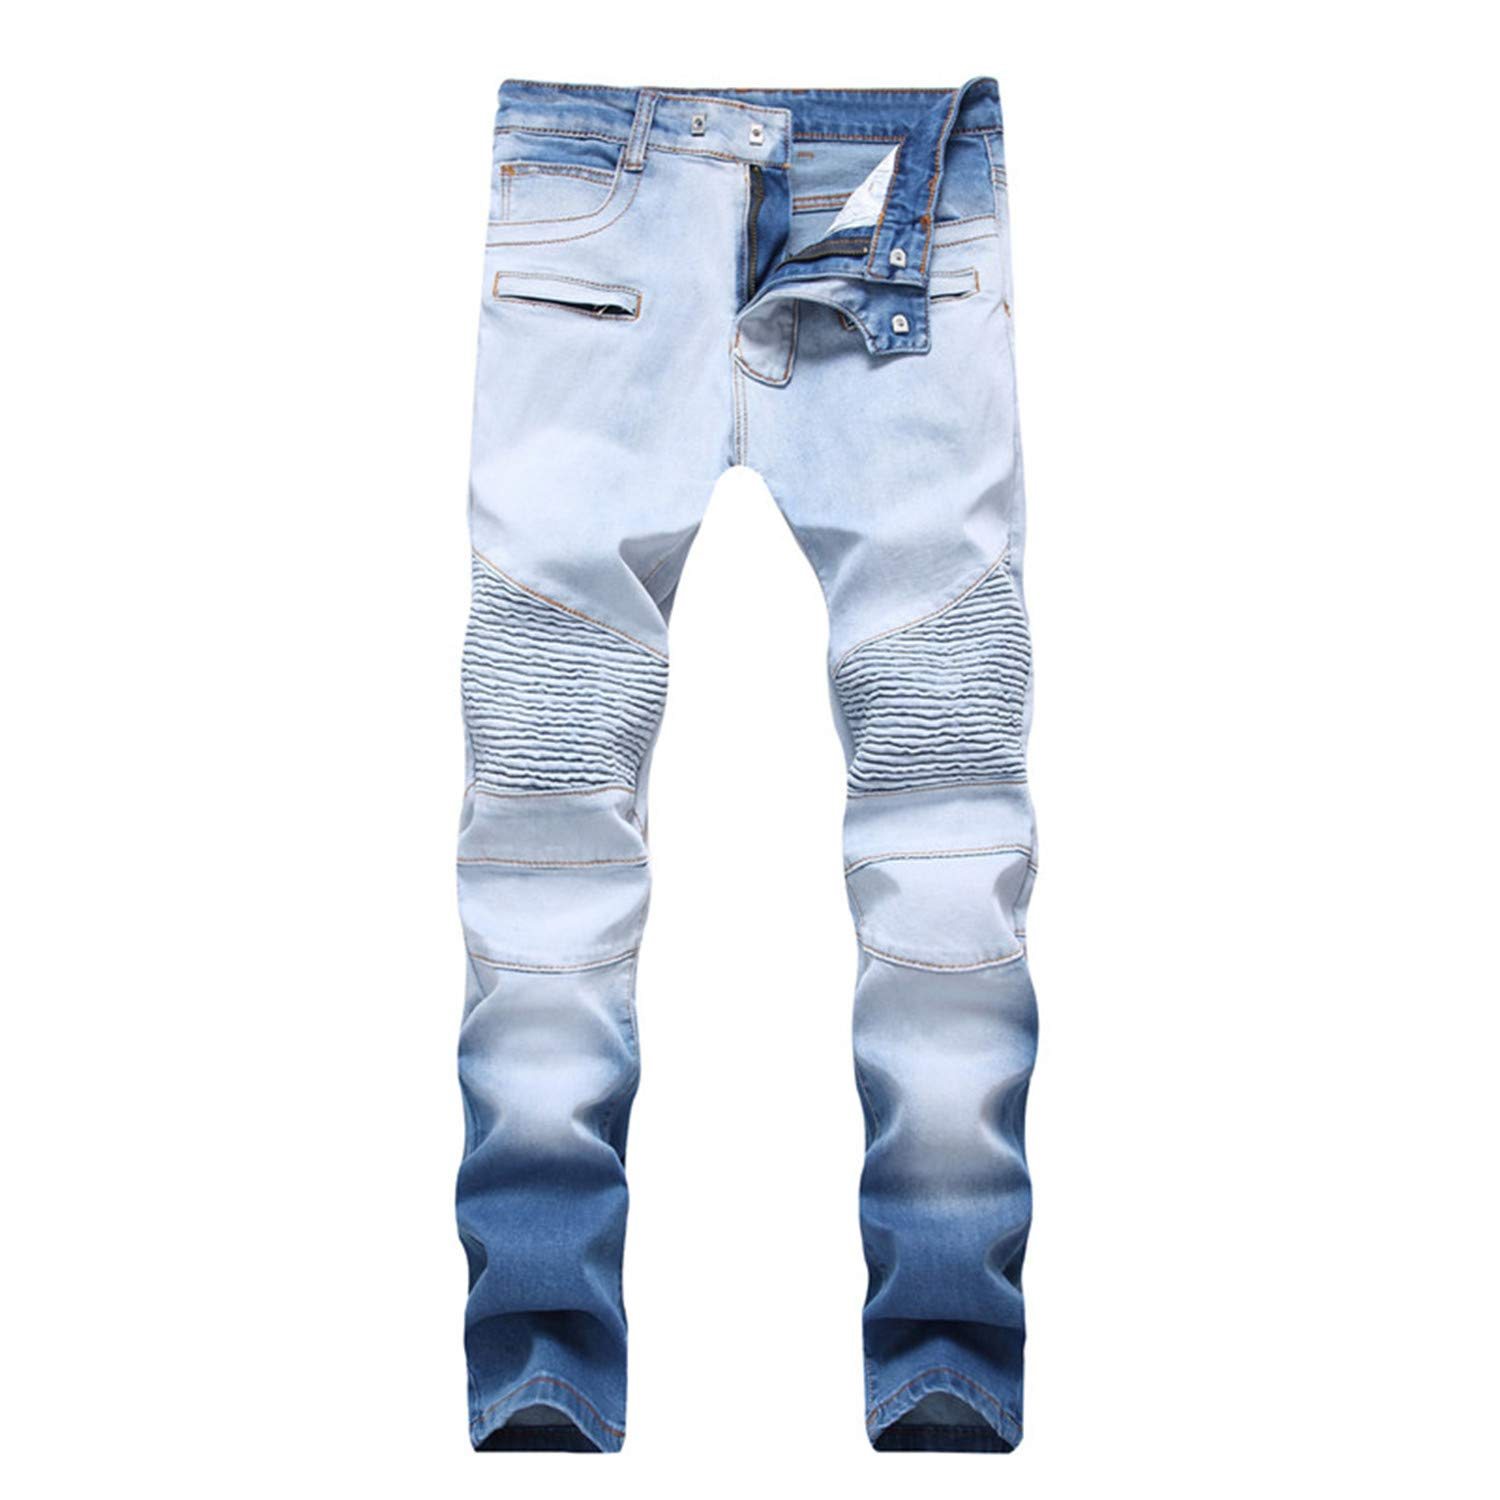 Sonjer Men Jeans Slim Skinny Biker Pleated Sky Blue Trousers Hip Hop Washed Bleached Casual Moto Zipper Denim Pants